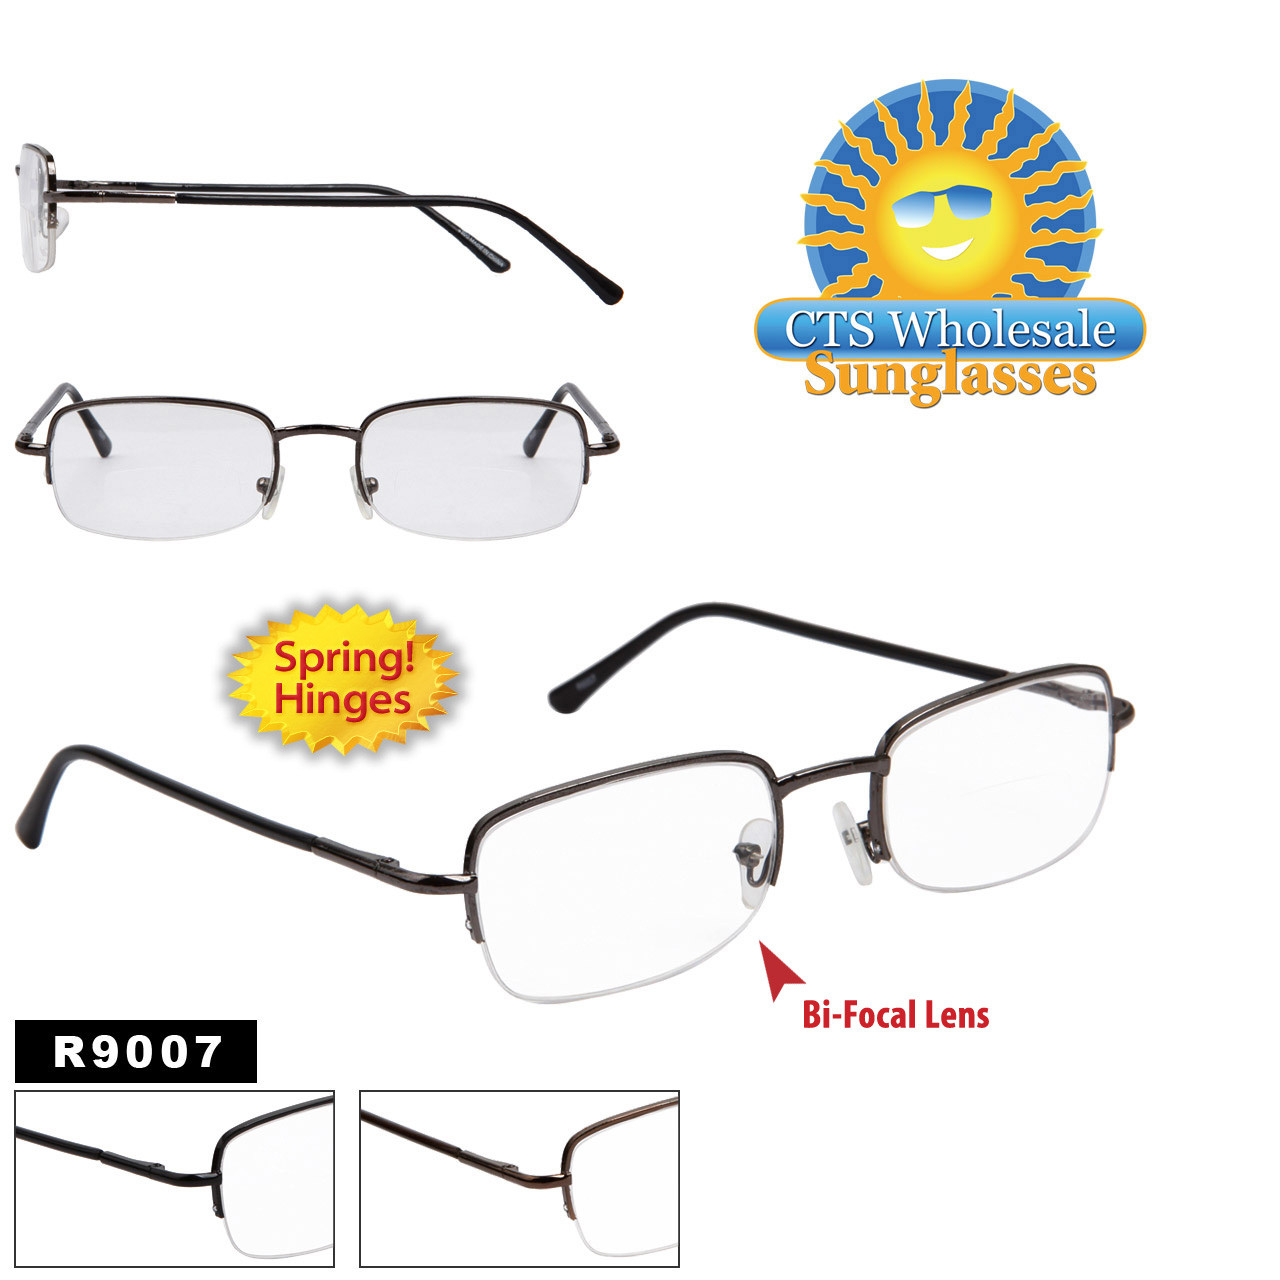 Bi-Focal Reading Glasses - R9007 (12 pcs.) Spring Hinges ~ Assorted Colors ~ Lens Strengths +1.00—+3.50